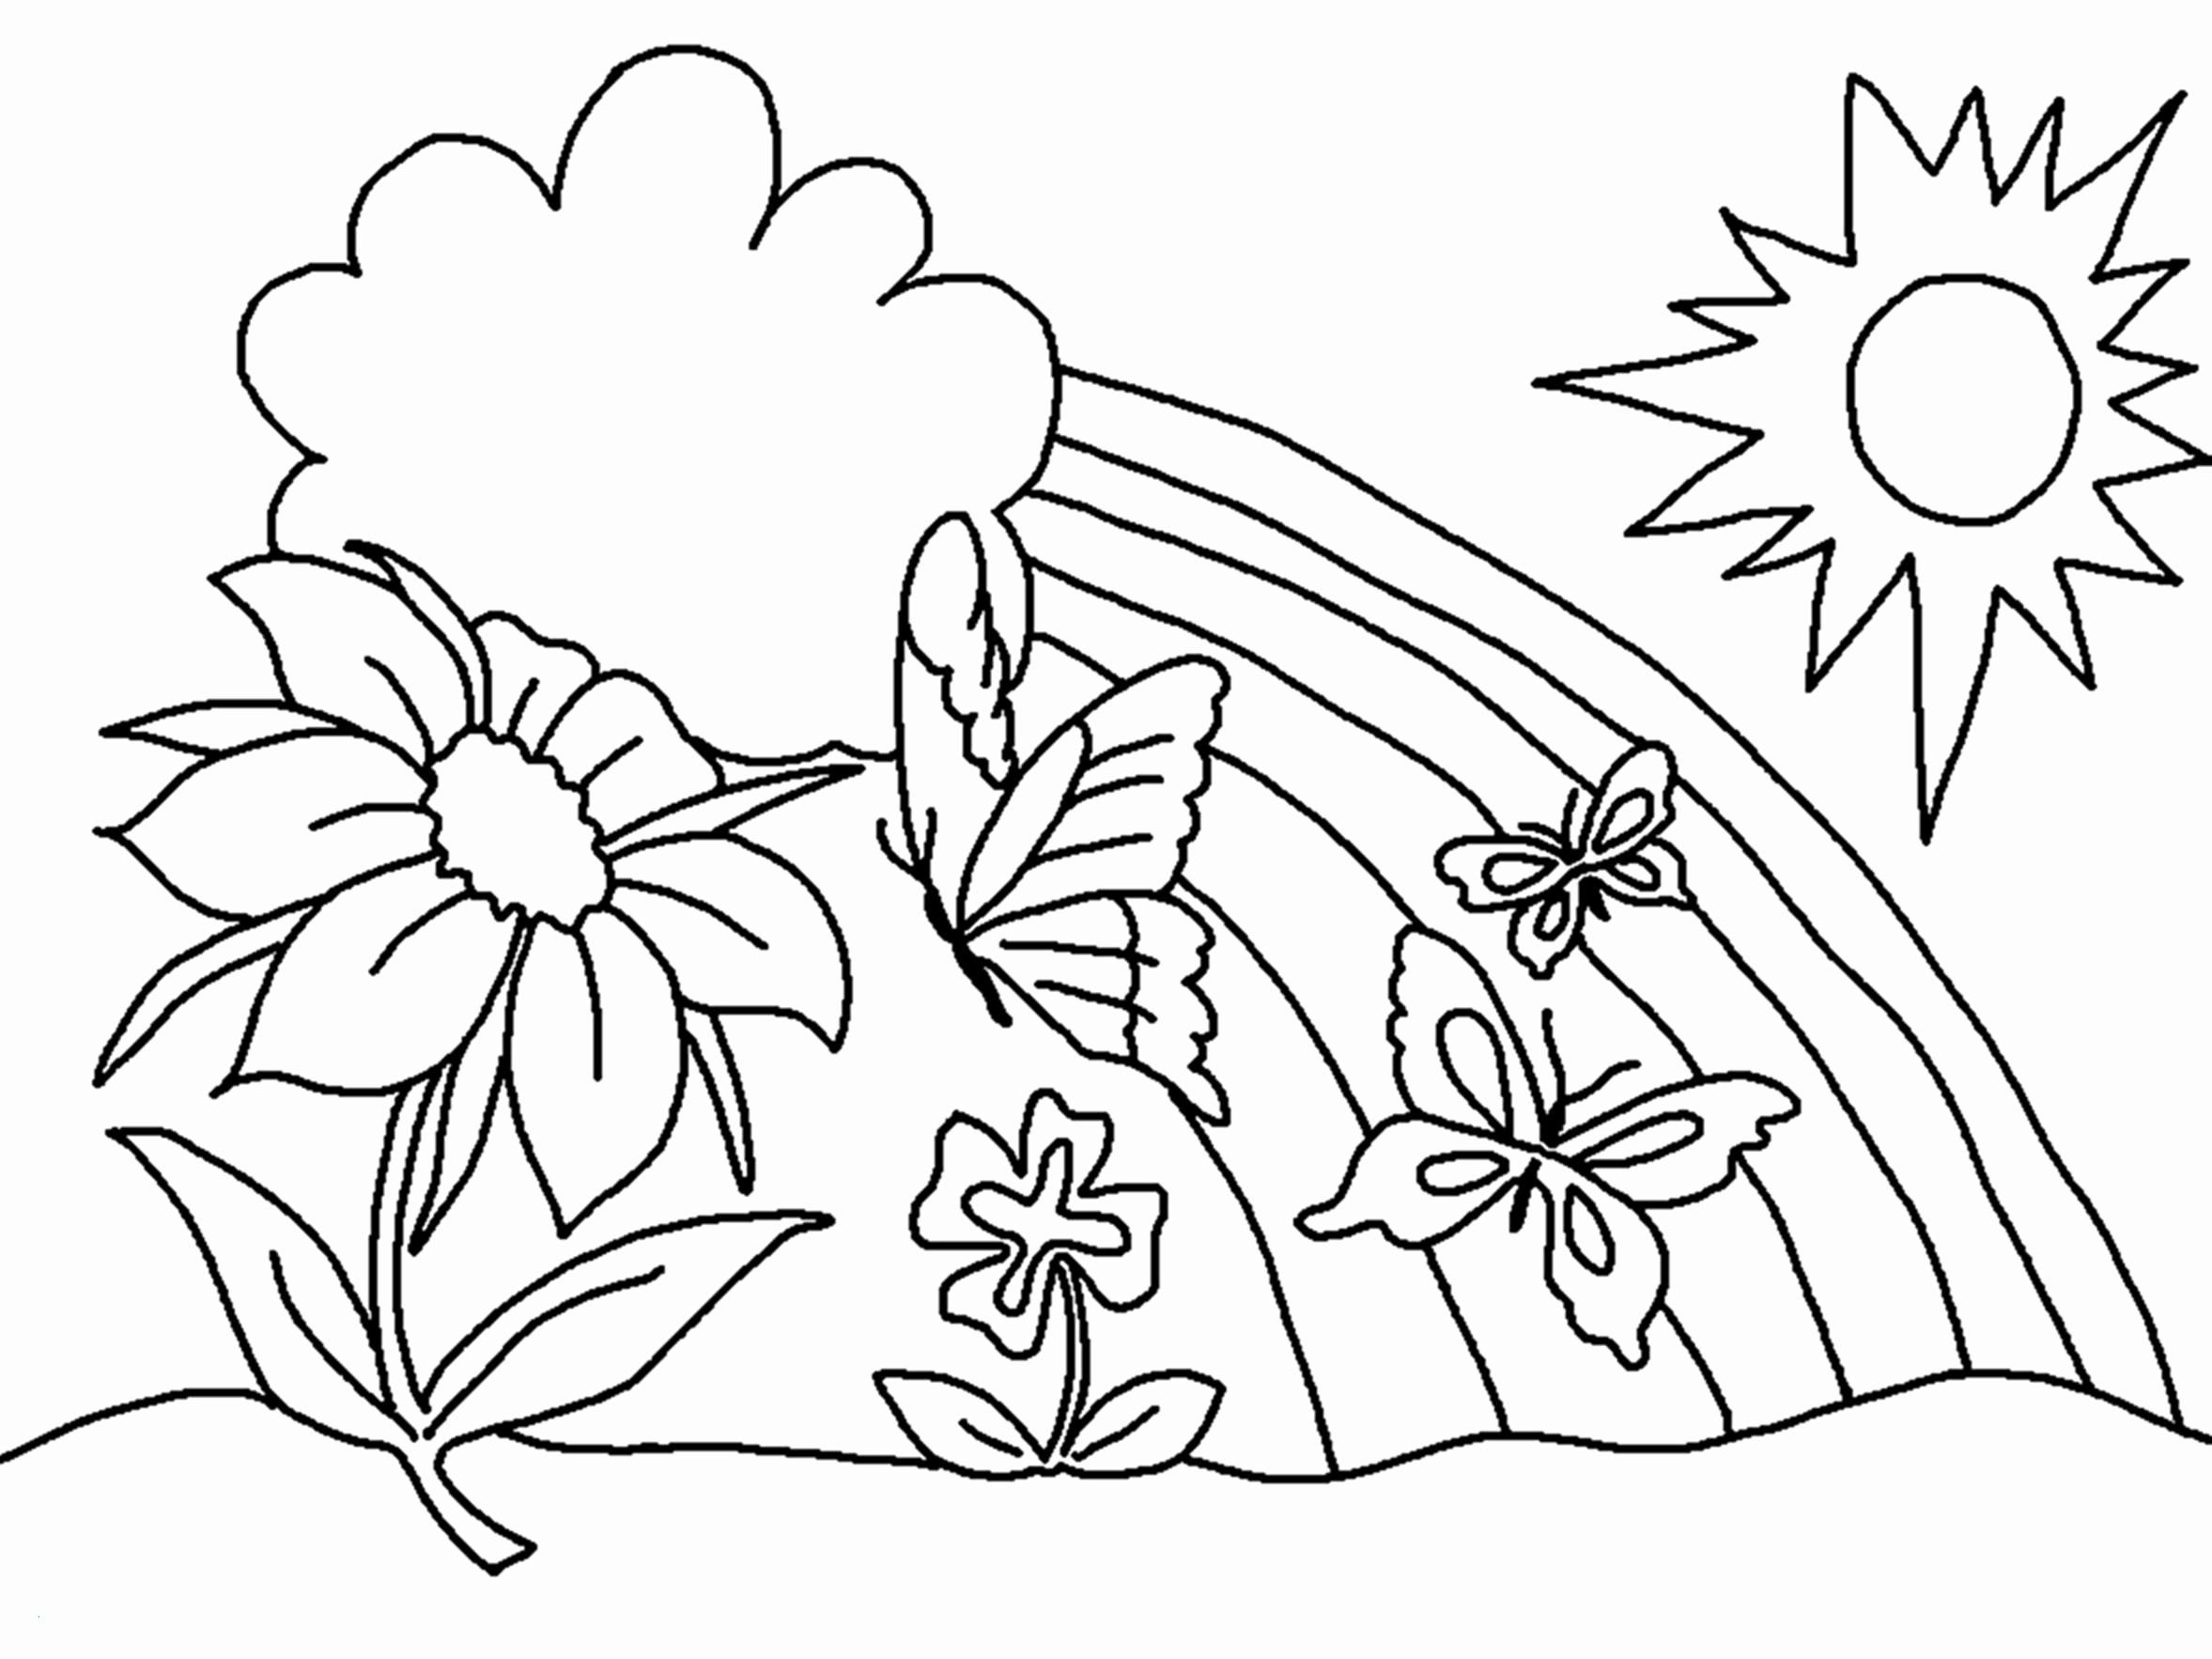 Free Flower Coloring Sheets Unique 26 Daisy Coloring Pages Download Coloring Sheet Printable Flower Coloring Pages Spring Coloring Pages Mandala Coloring Pages